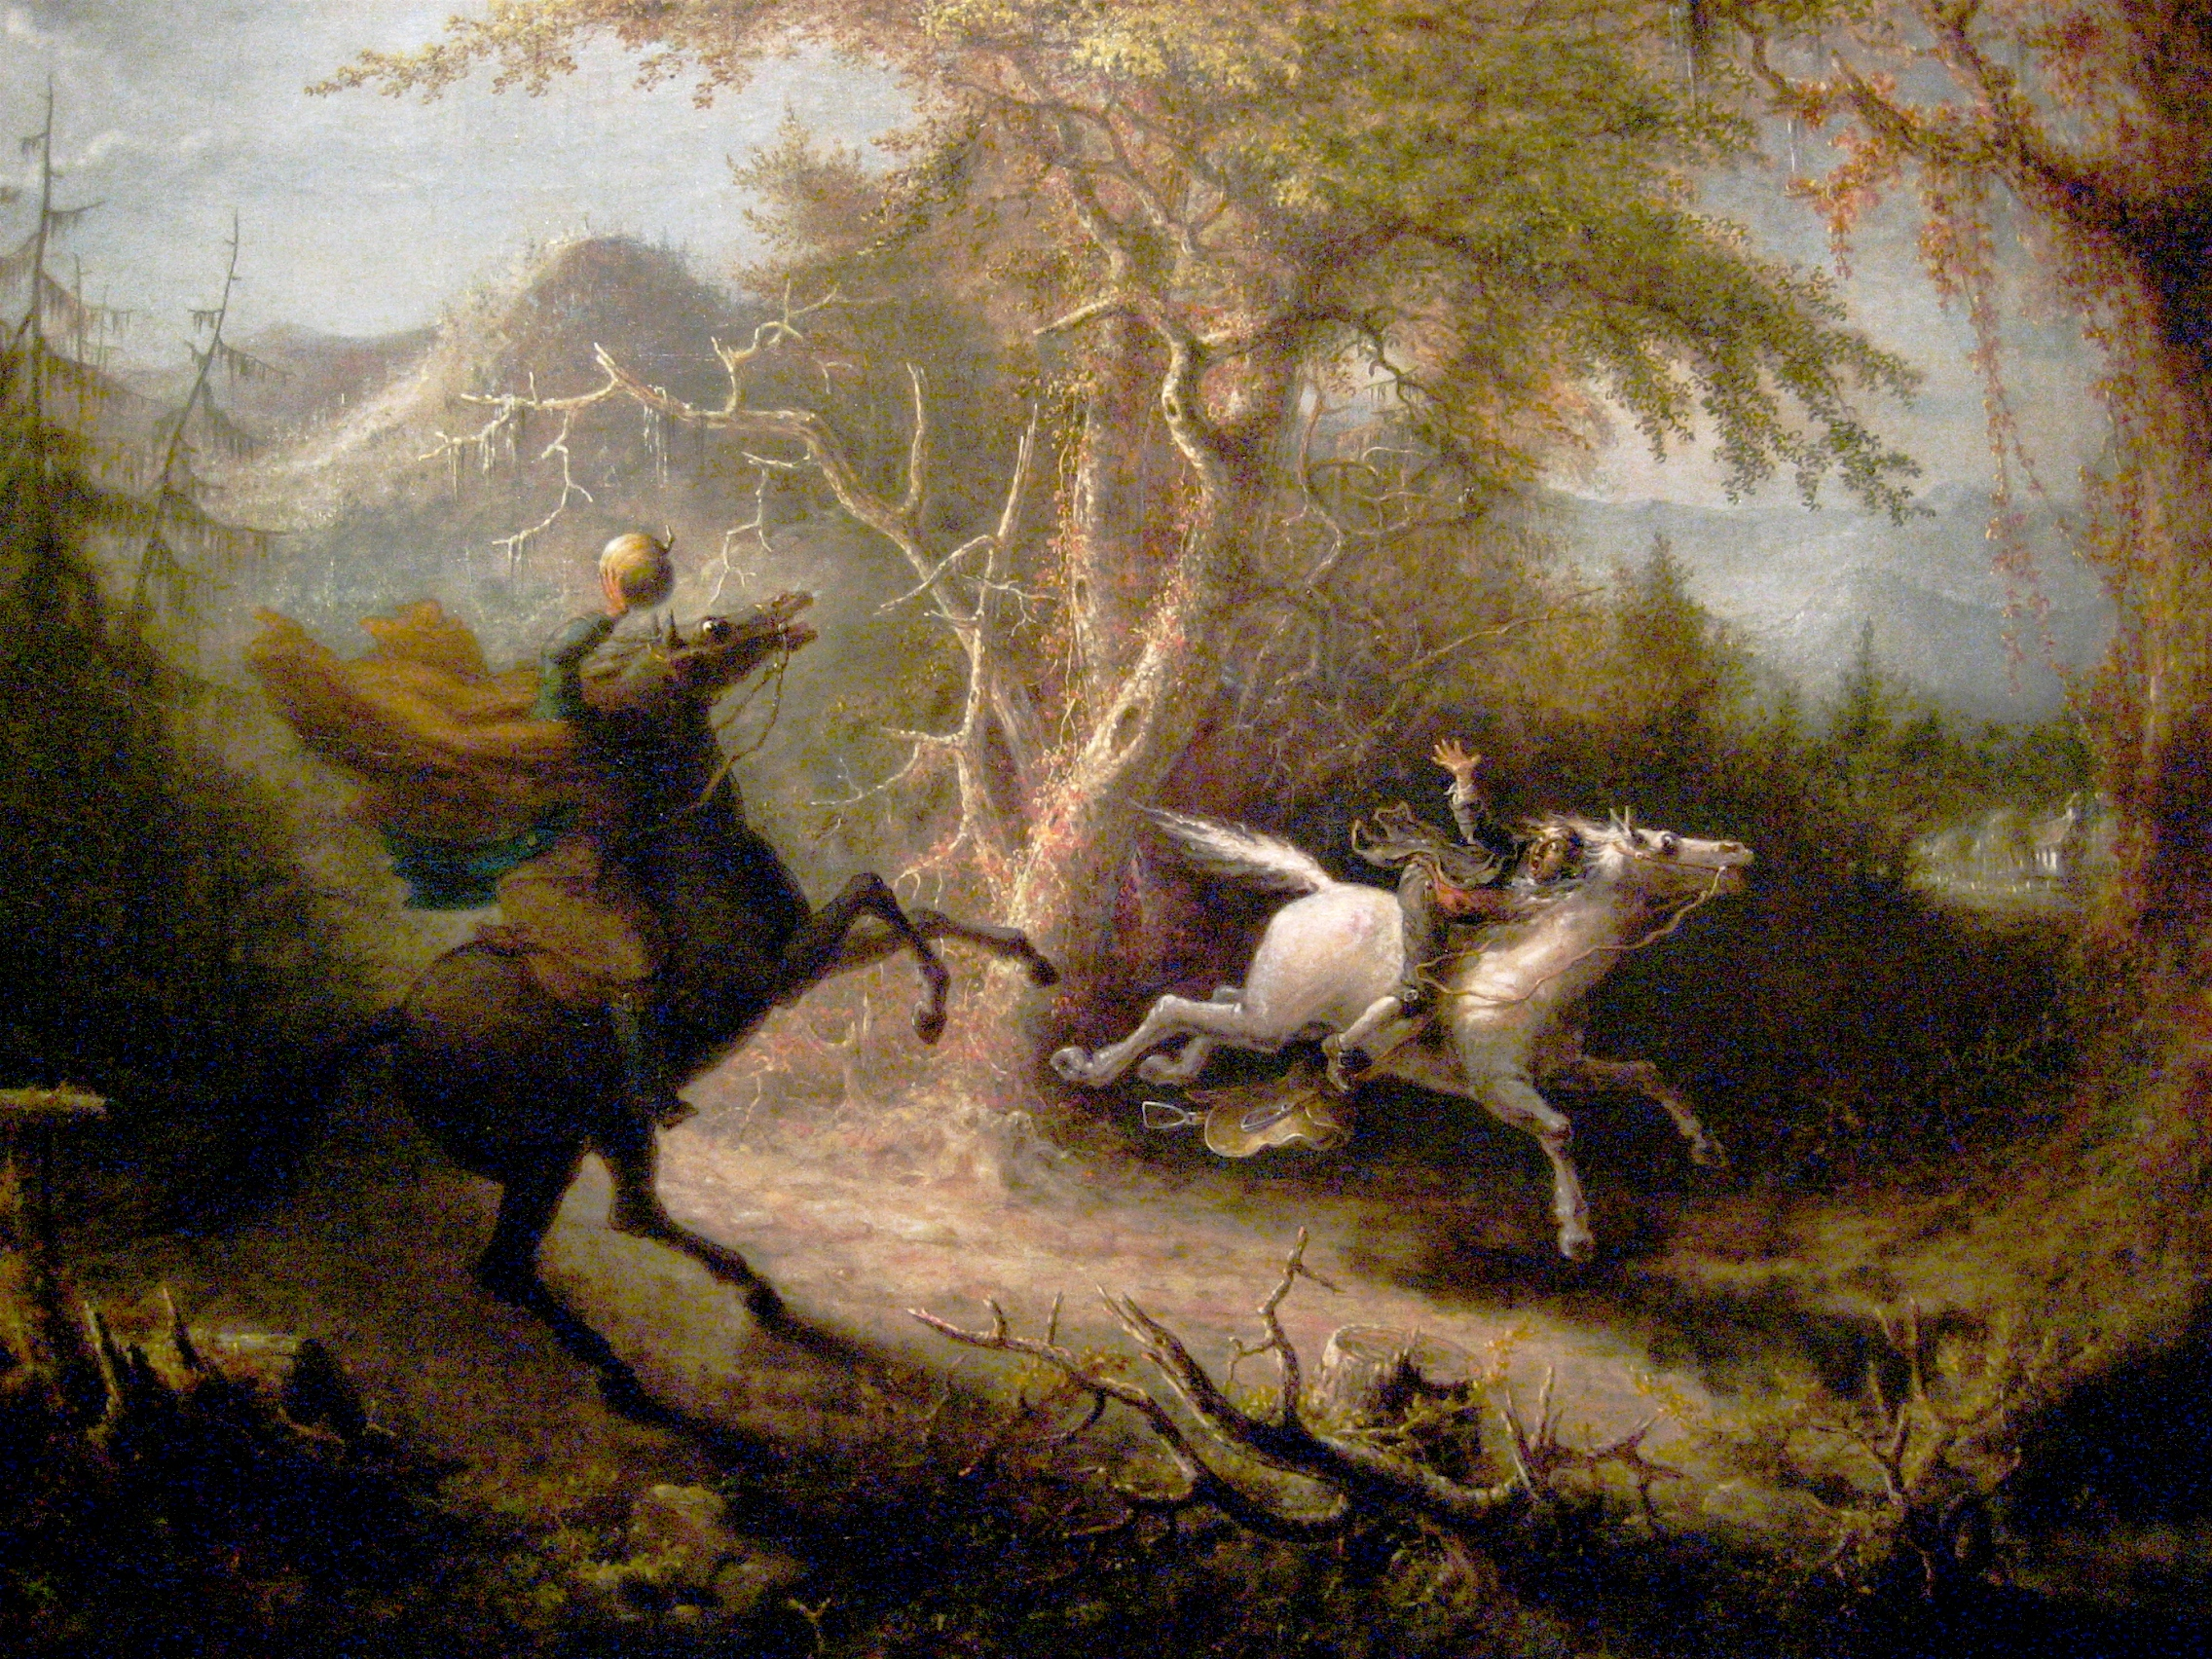 The Headless Horseman Pursuing Ichabod Crane, by John Quidor